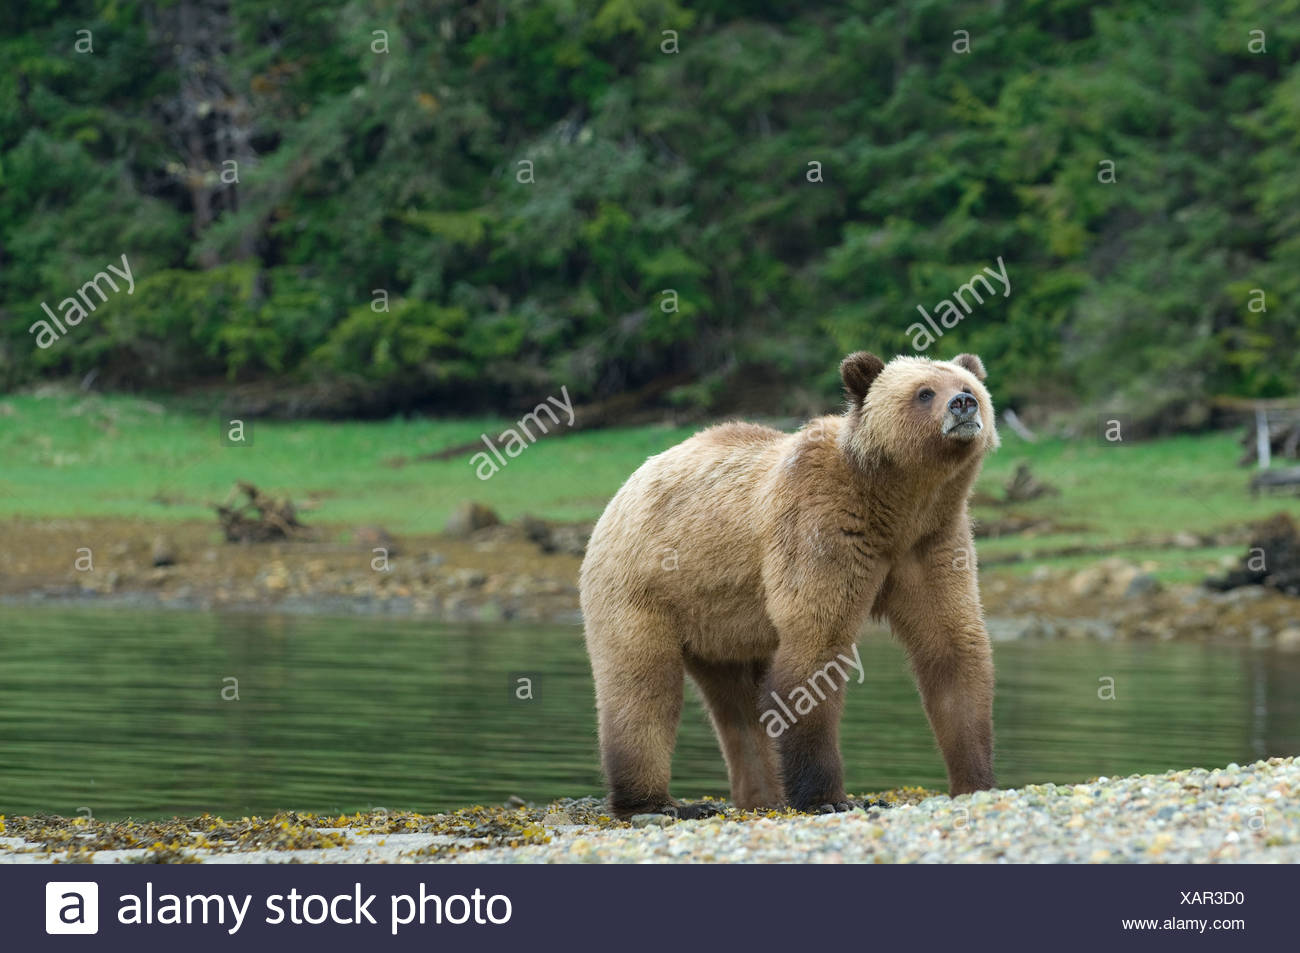 Female Grizzly Bear (Ursus arctos horribilis) sniffs air during mating season at Khutzeymateen Grizzly Bear Sanctuary North of P - Stock Image